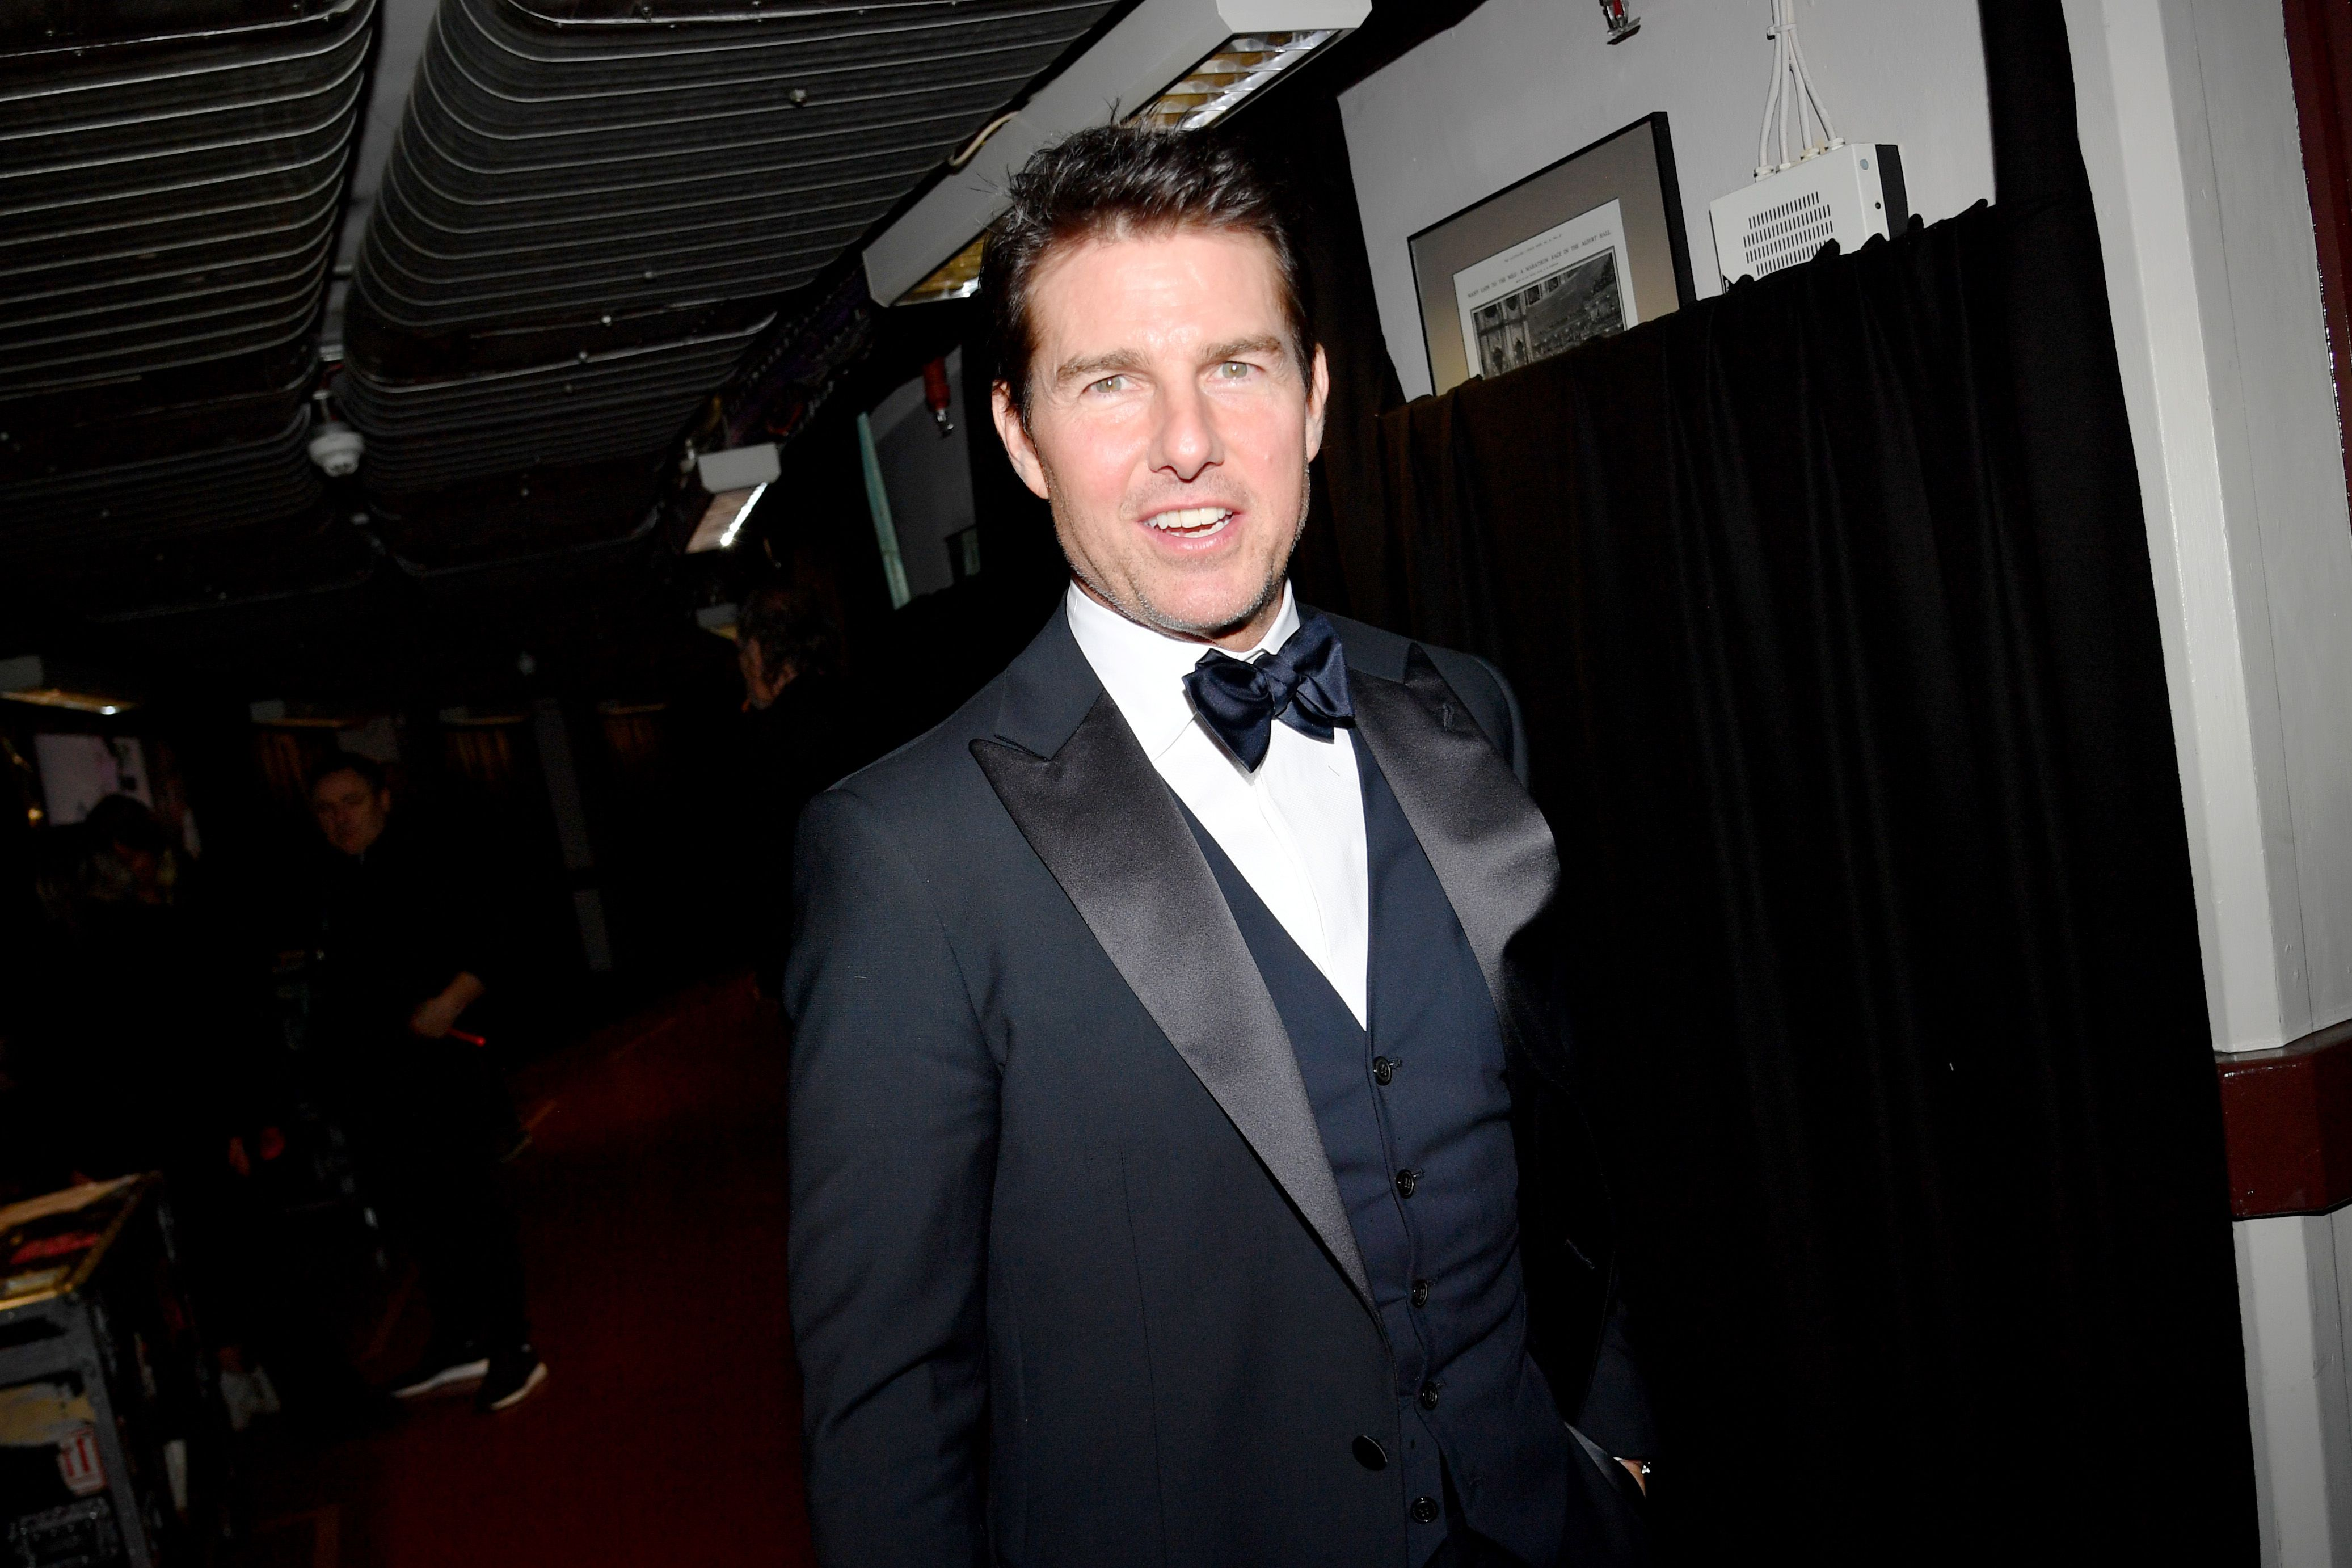 Tom Cruise at a movie premiere